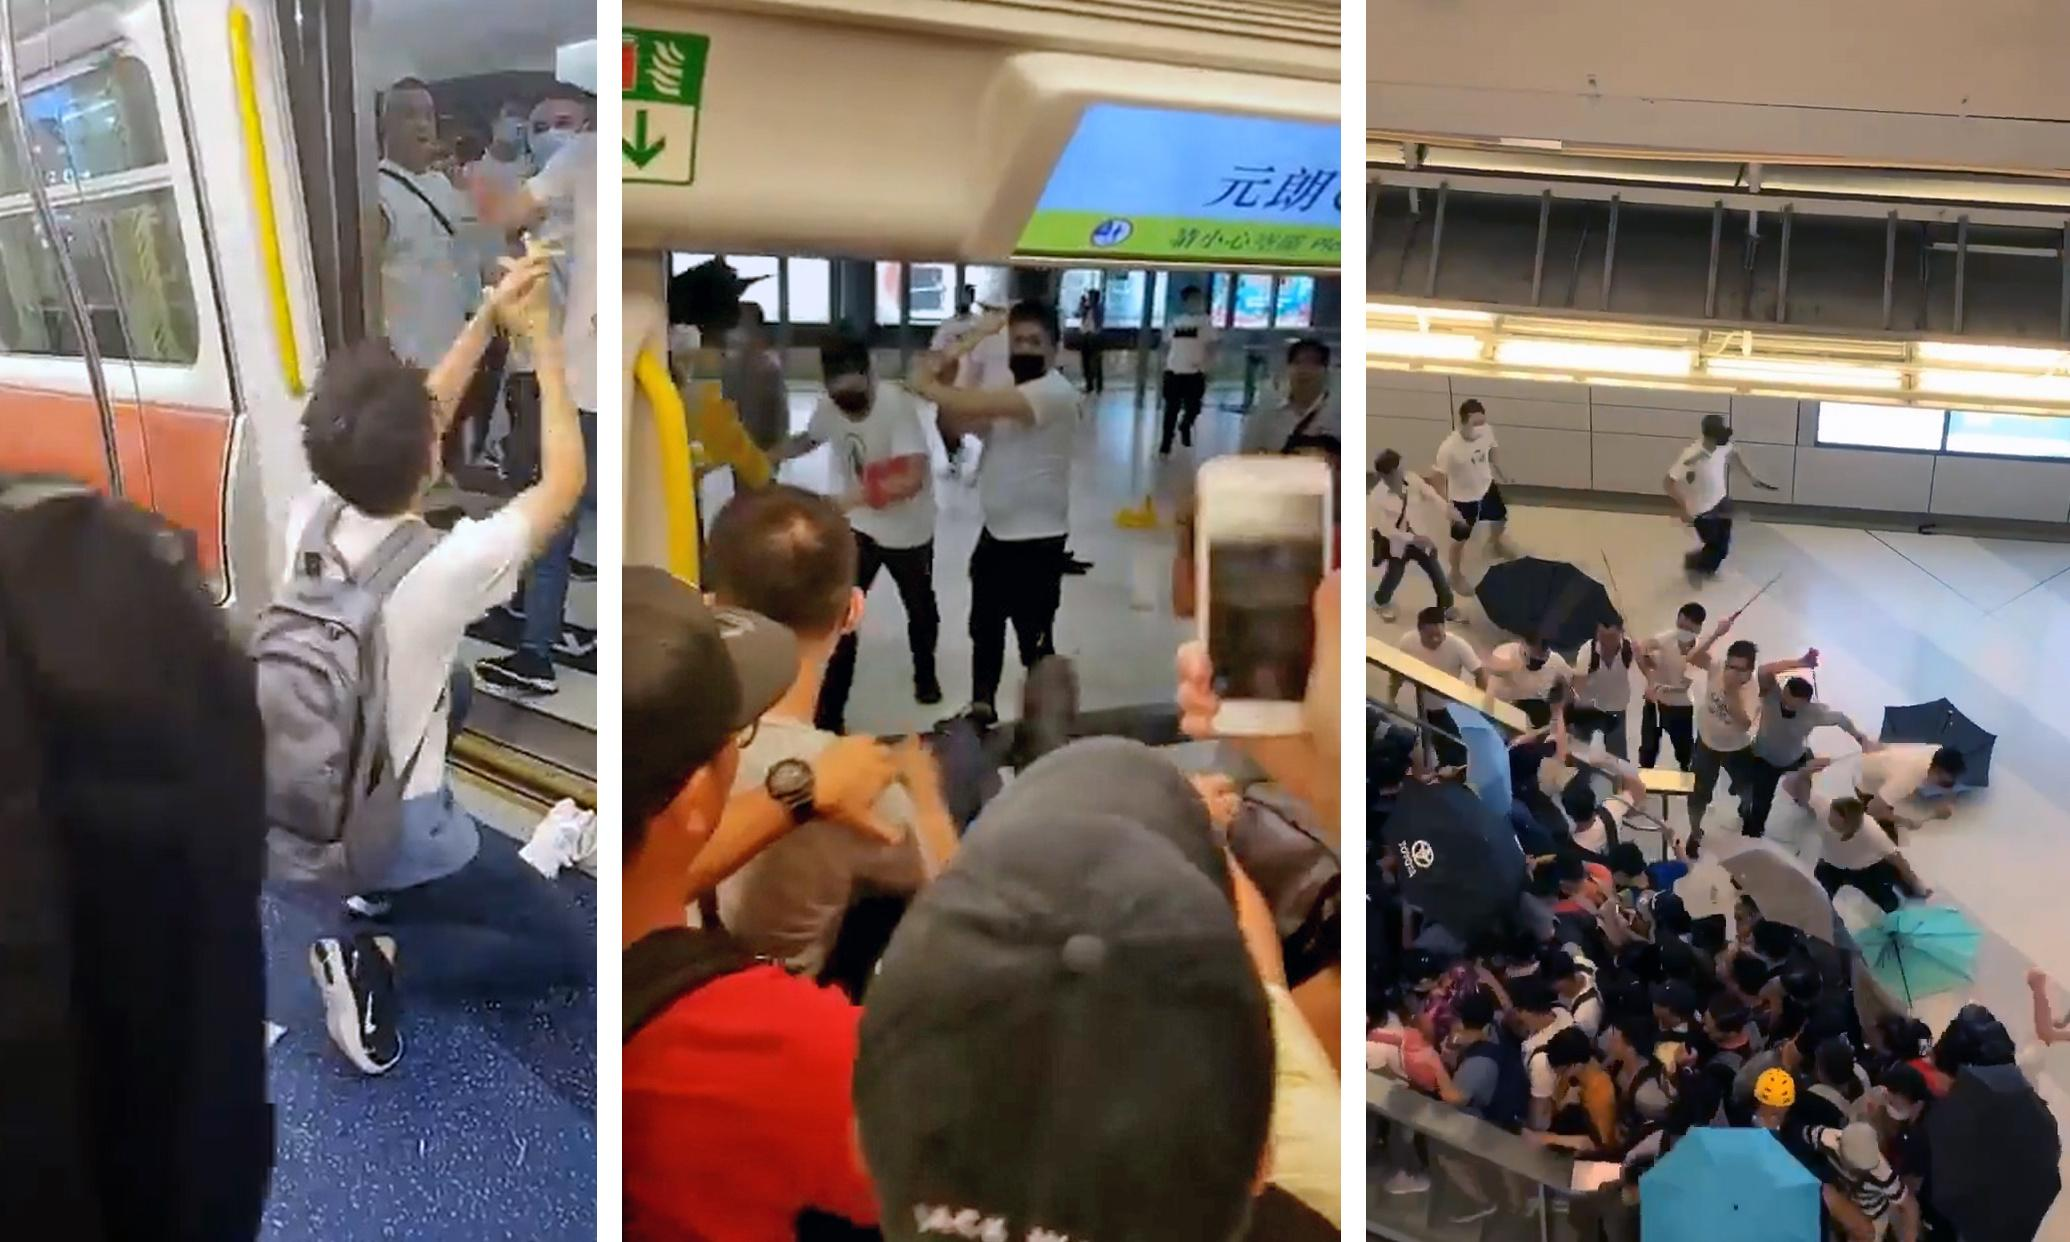 'Where were the police?' Hong Kong outcry after masked thugs launch attack